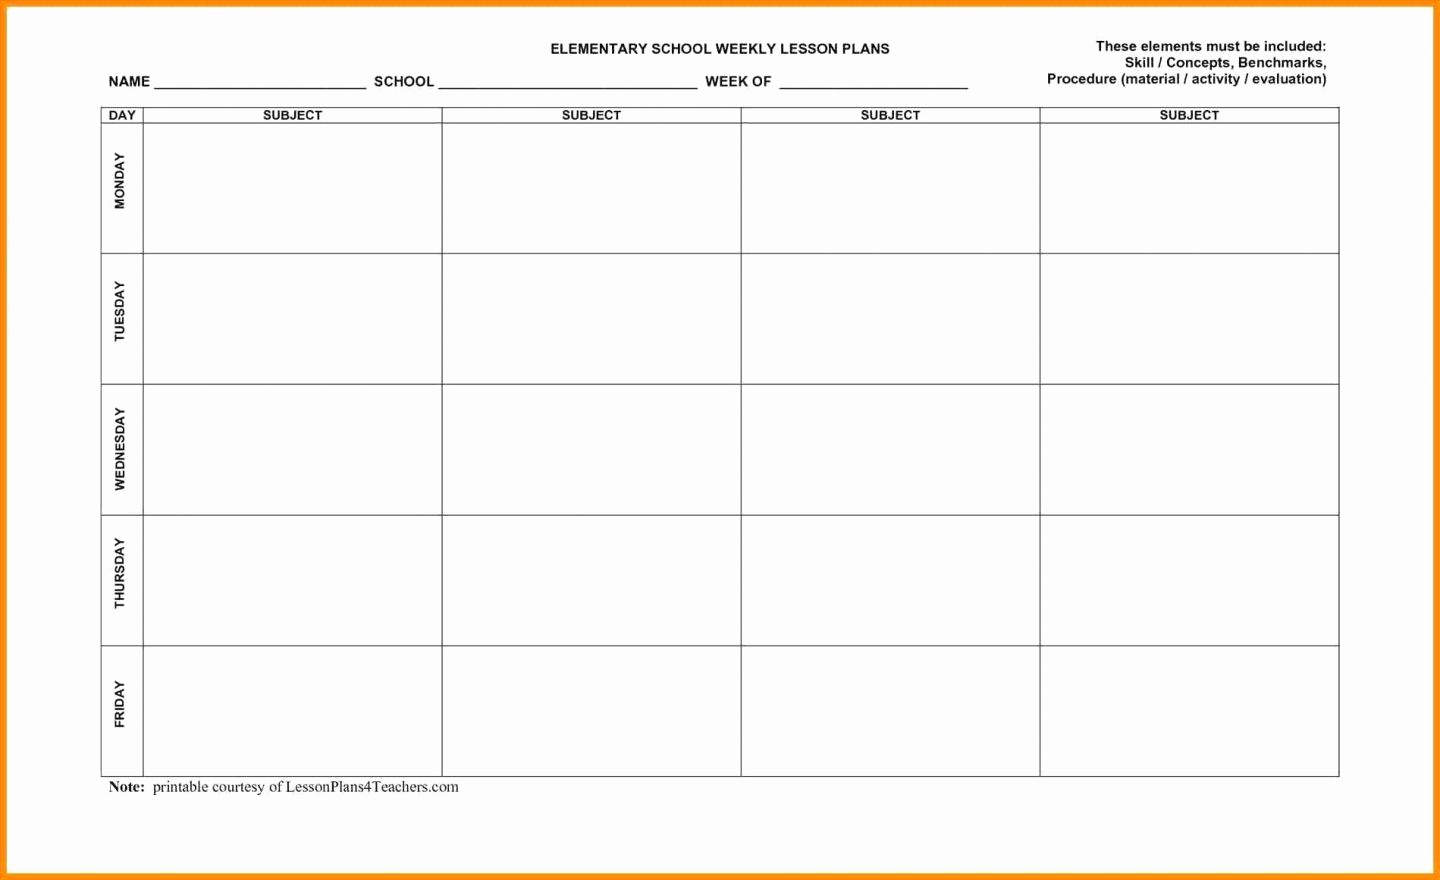 Daily Planner Template Google Docs Awesome Daily Lesson Plan Template High School Beautiful Doc Word